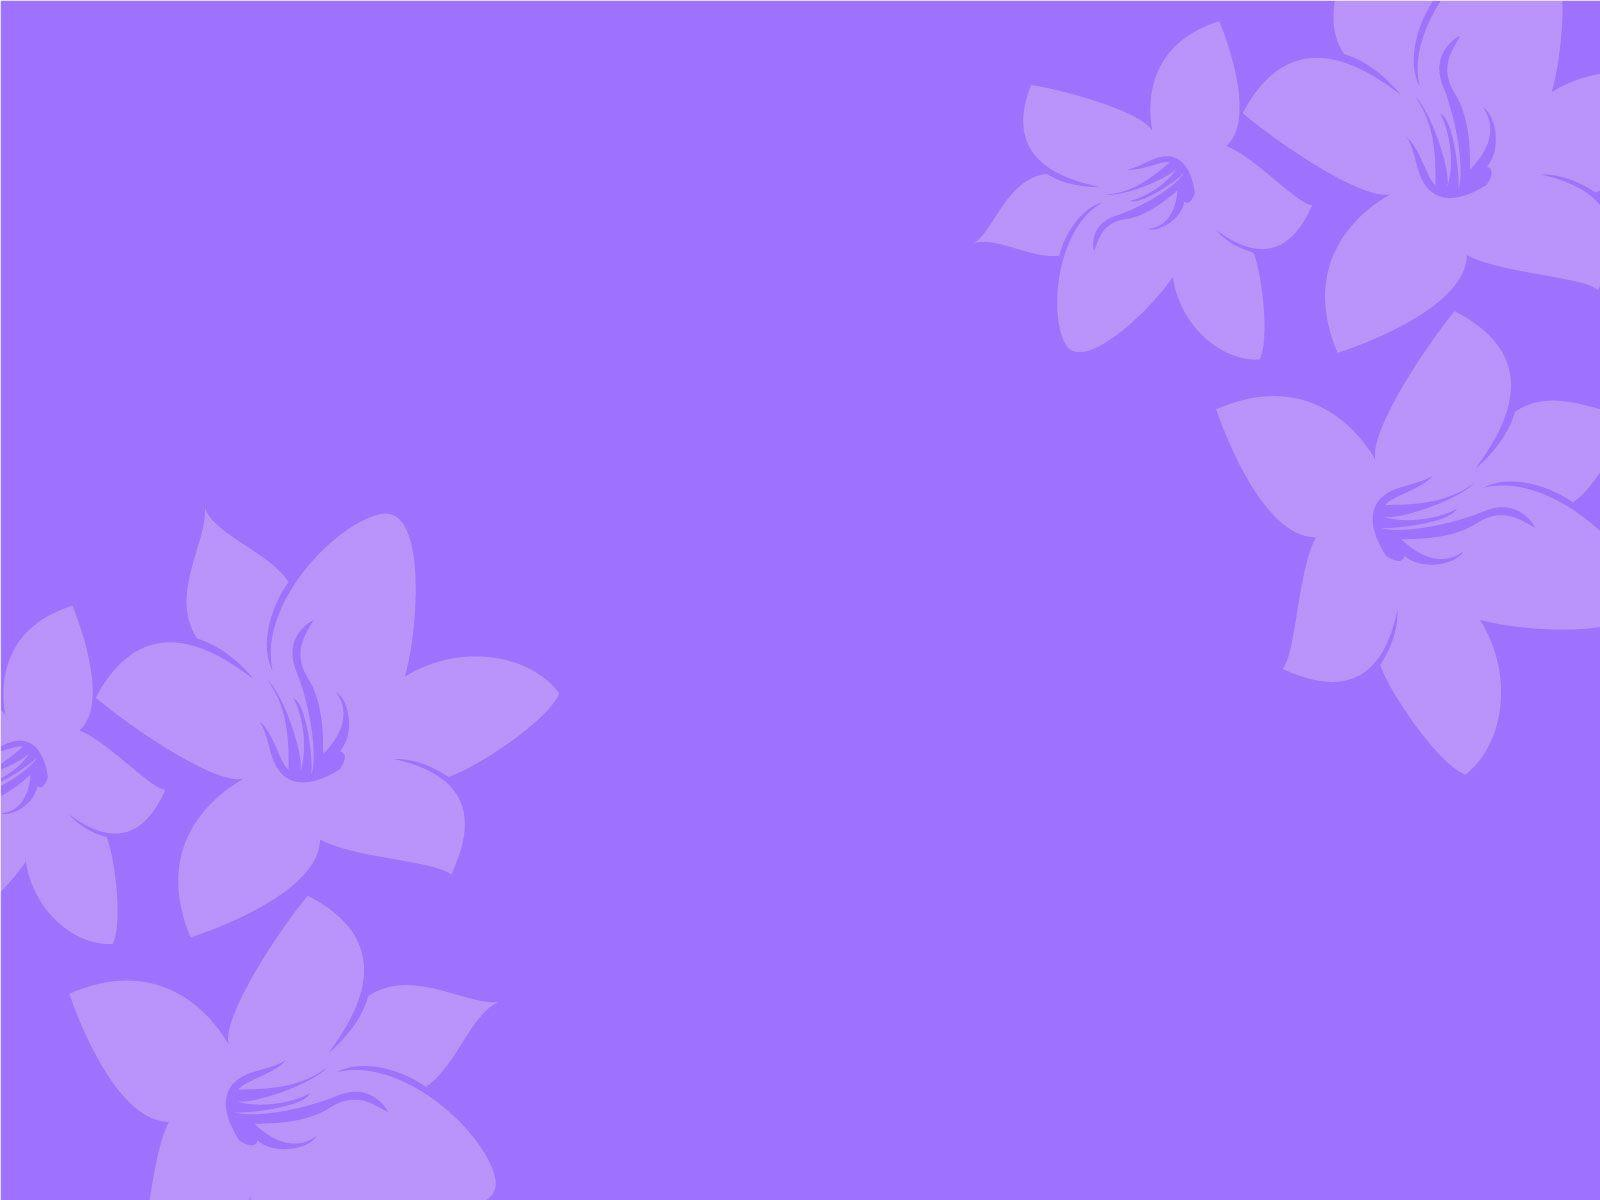 Purple Flower Backgrounds for Powerpoint Presentations, Purple ...